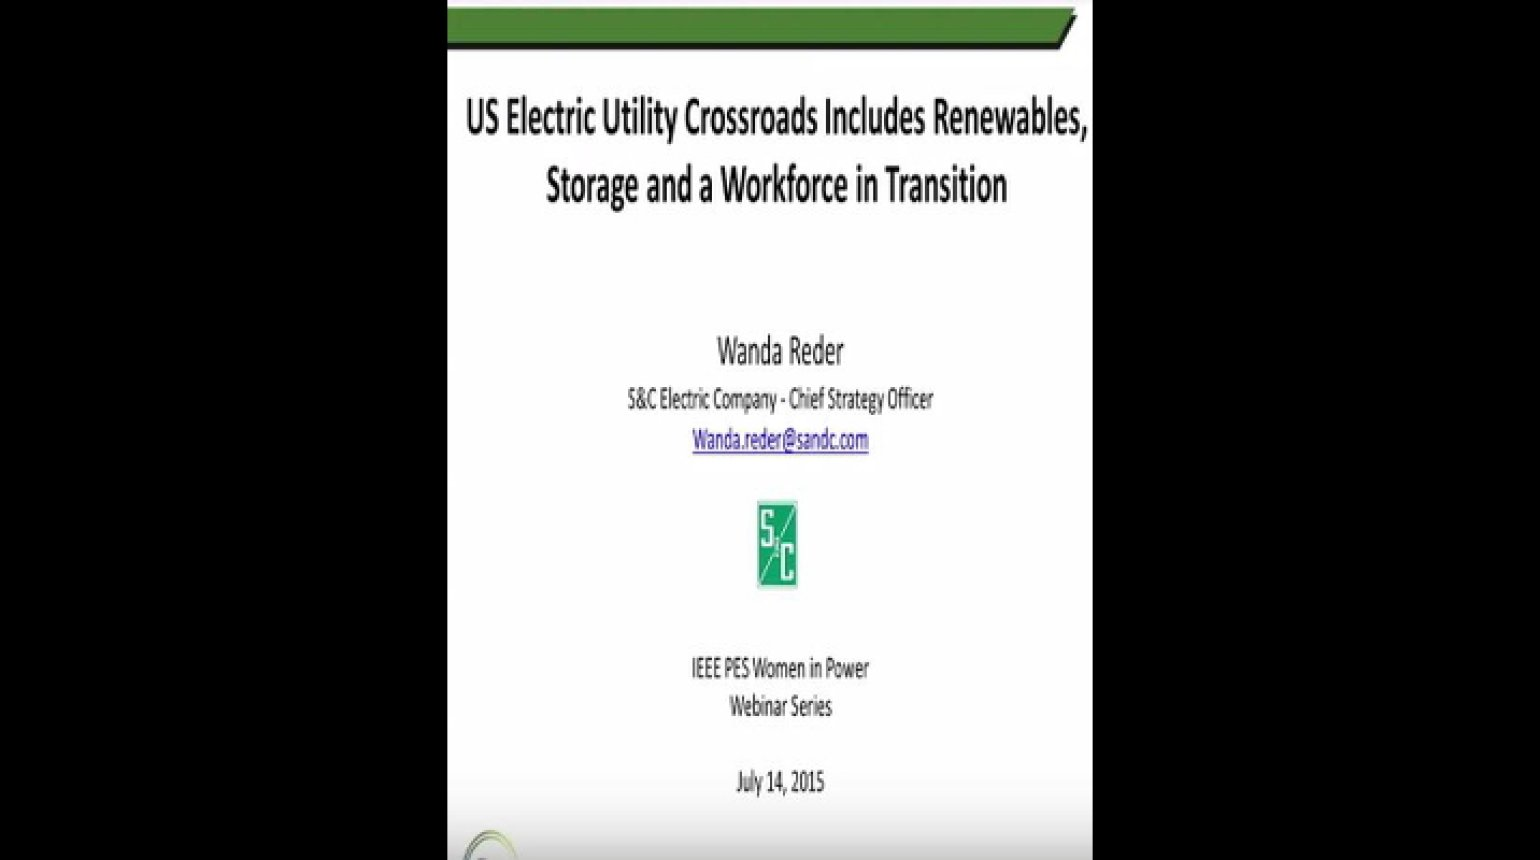 Electric Utility Crossroads Includes Renewables, Storage, and a Workforce in Transition